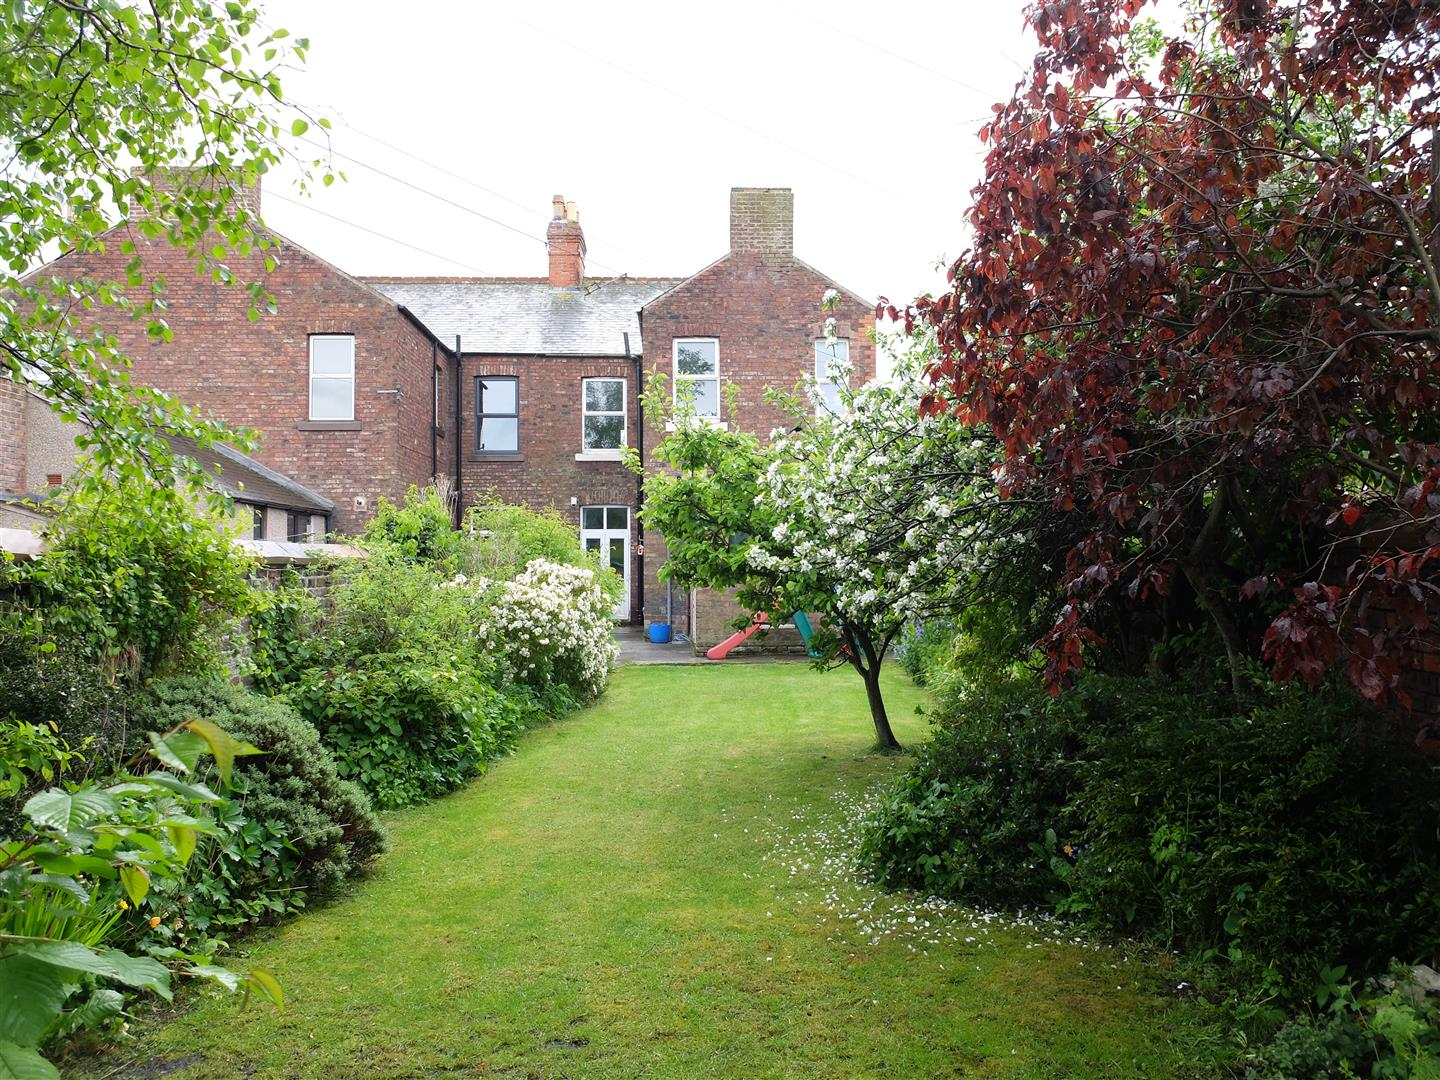 4 Bedrooms House - End Terrace For Sale 166 Nelson Street Carlisle